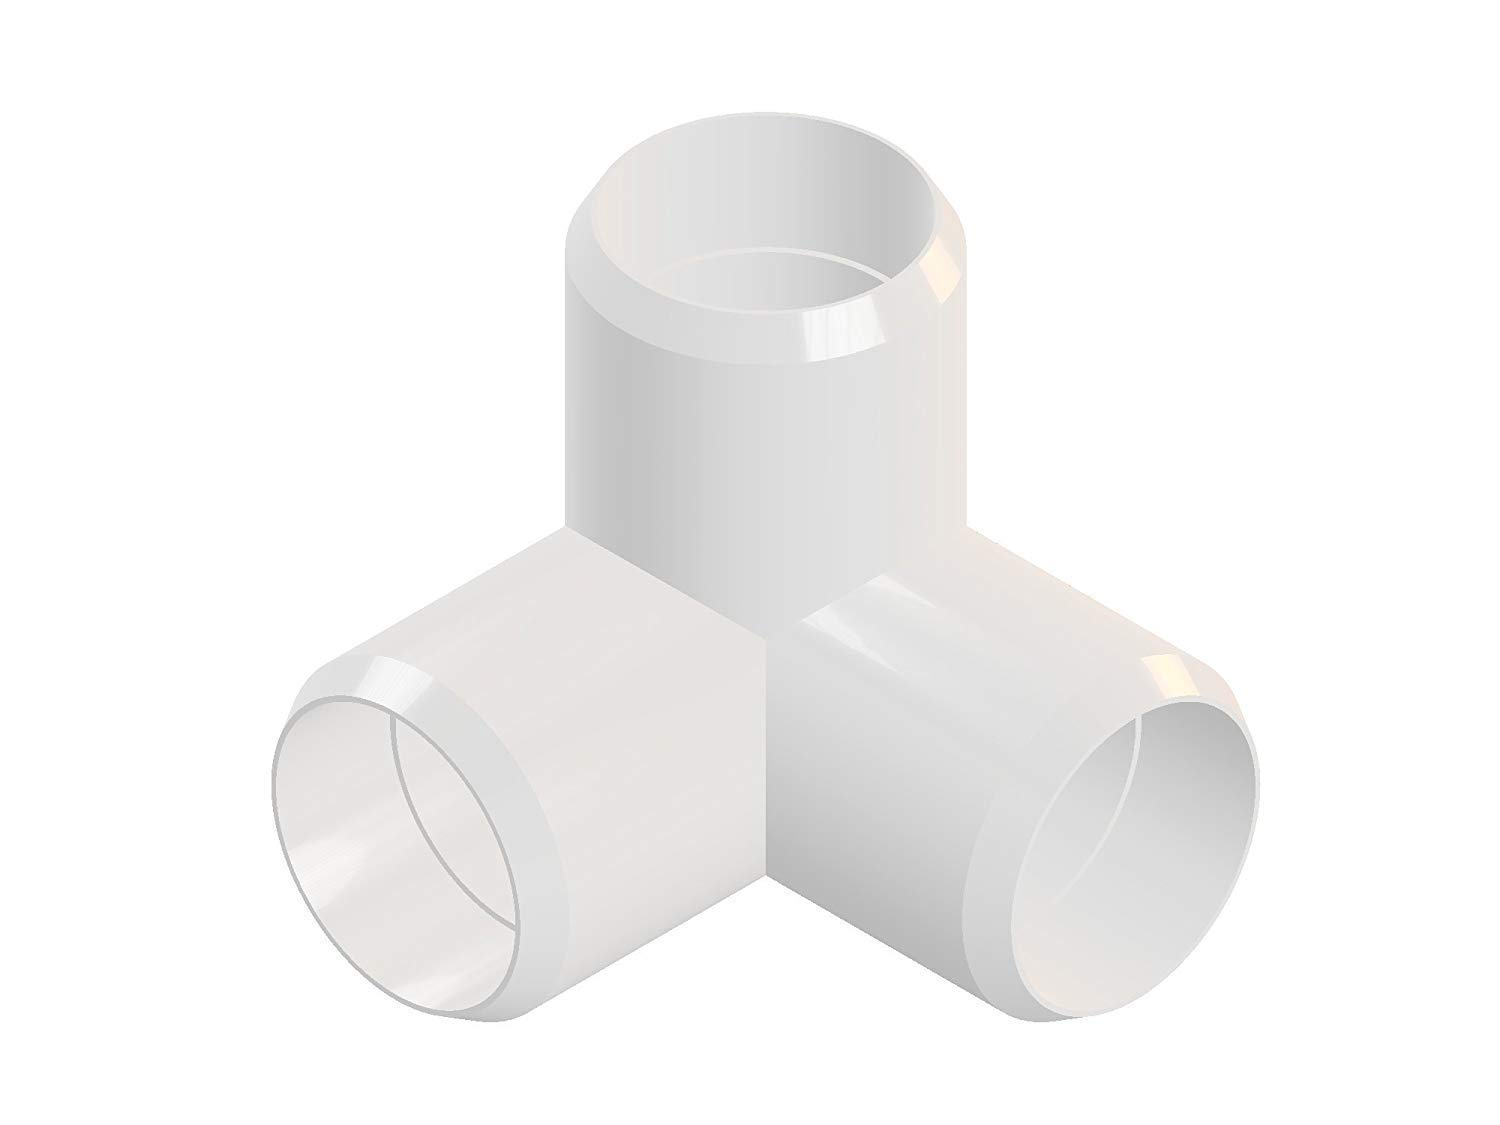 Sustainable Village - PVC Pipe Fittings for Building Furniture and Cool Structures | (1 Inch, 3-Way Elbow, 16) by Sustainable Village